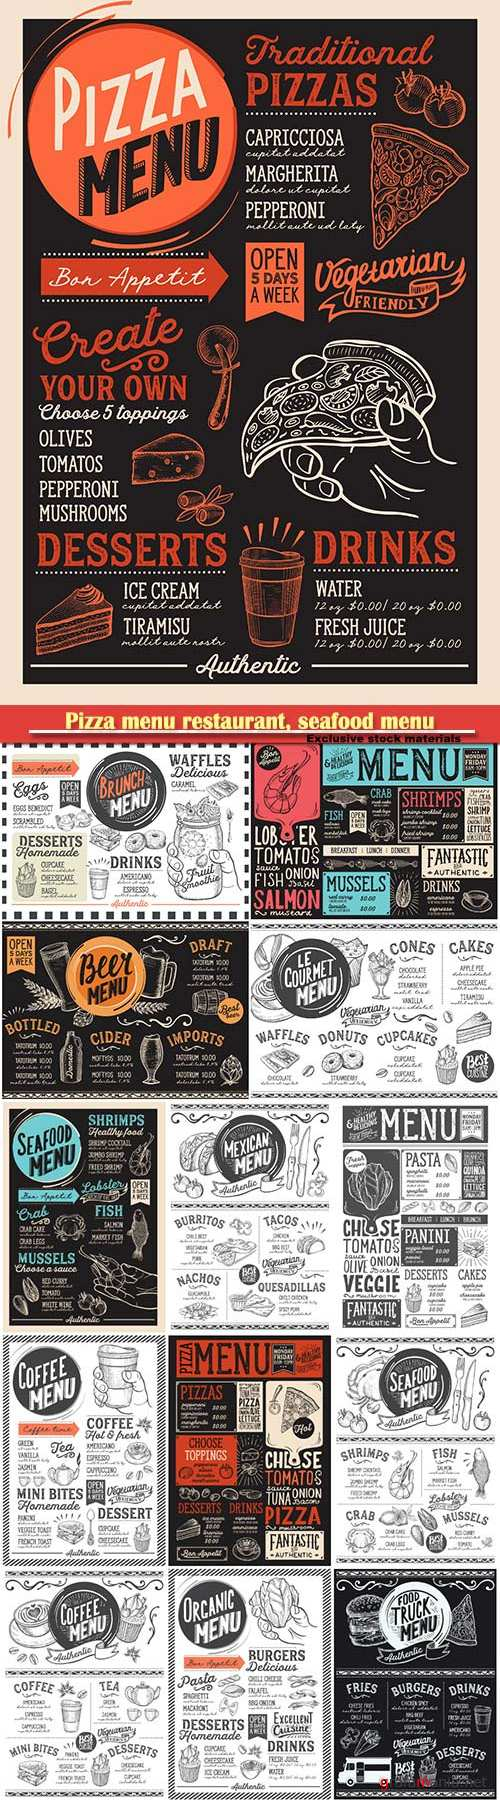 Pizza menu restaurant, seafood menu vector template